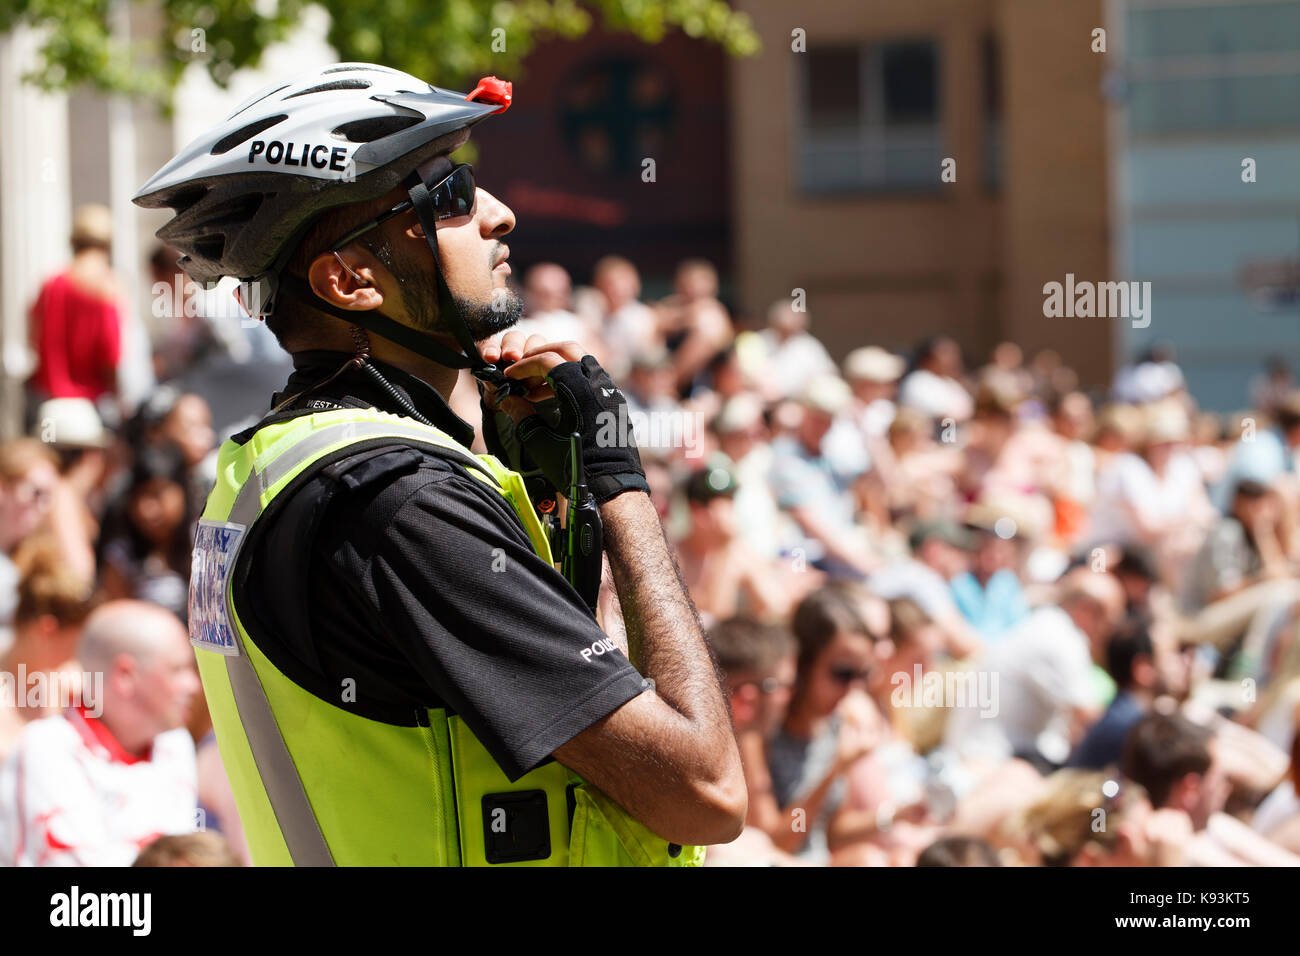 An Asian British Policeman adjusts his pedal cycle helmet in front of a large crowd a a event in central Birmingham, - Stock Image